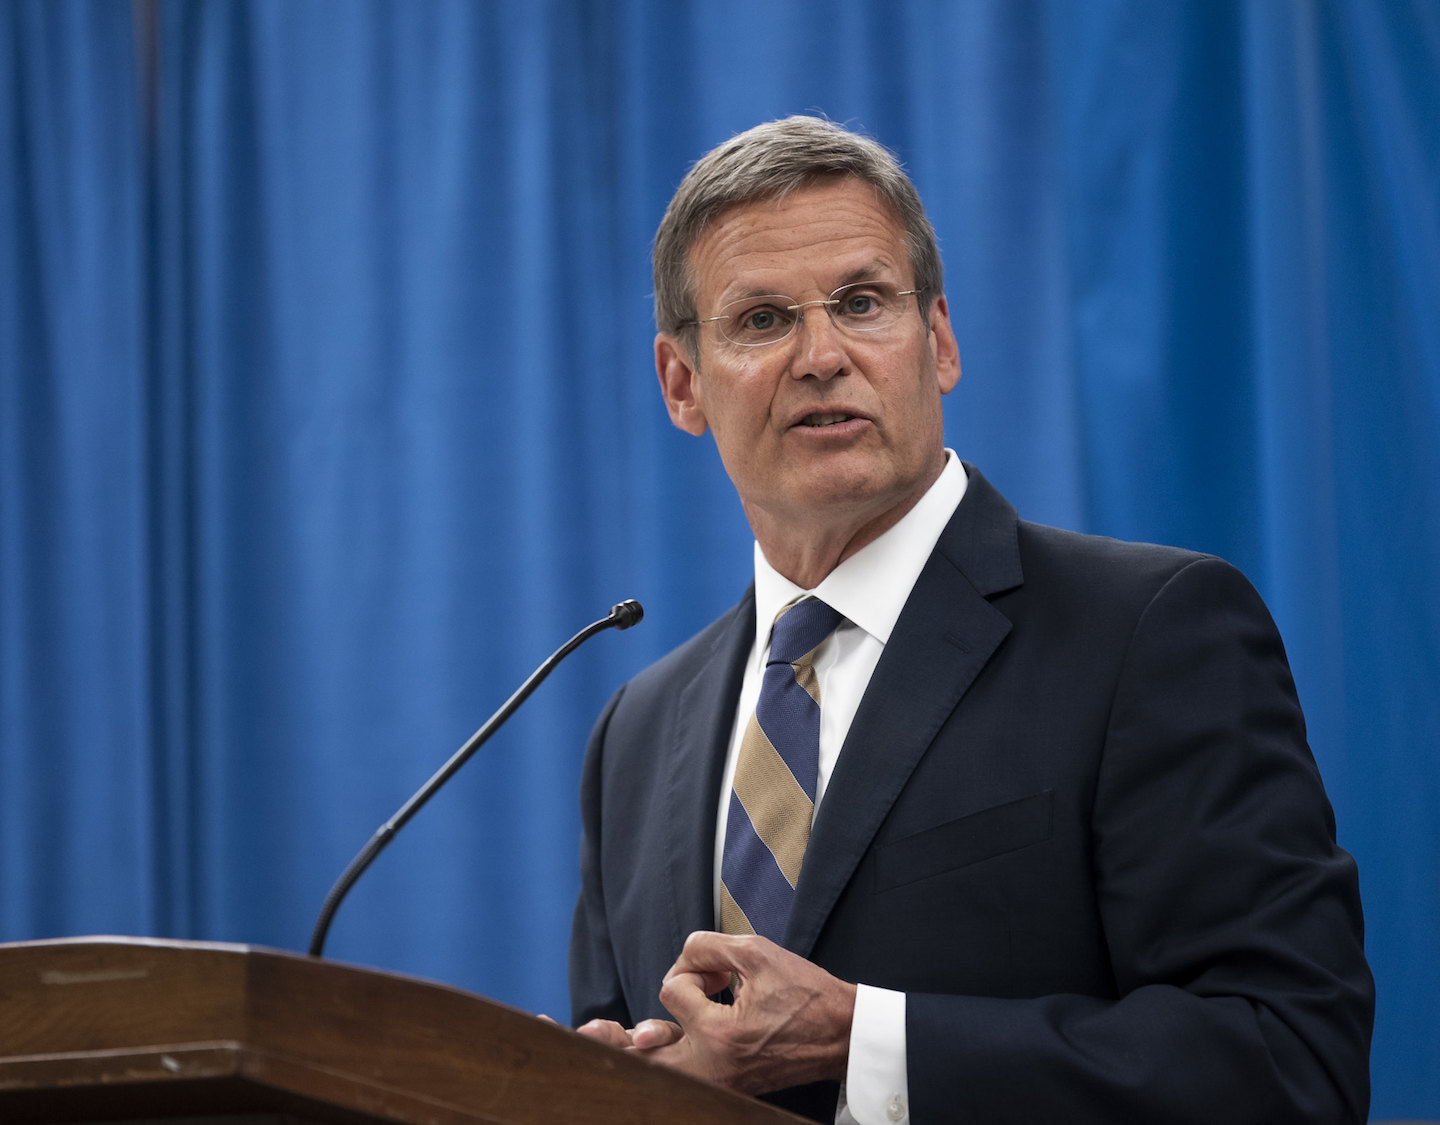 Gov. Bill Lee has been at the helm of Tennessee during the coronavirus pandemic.